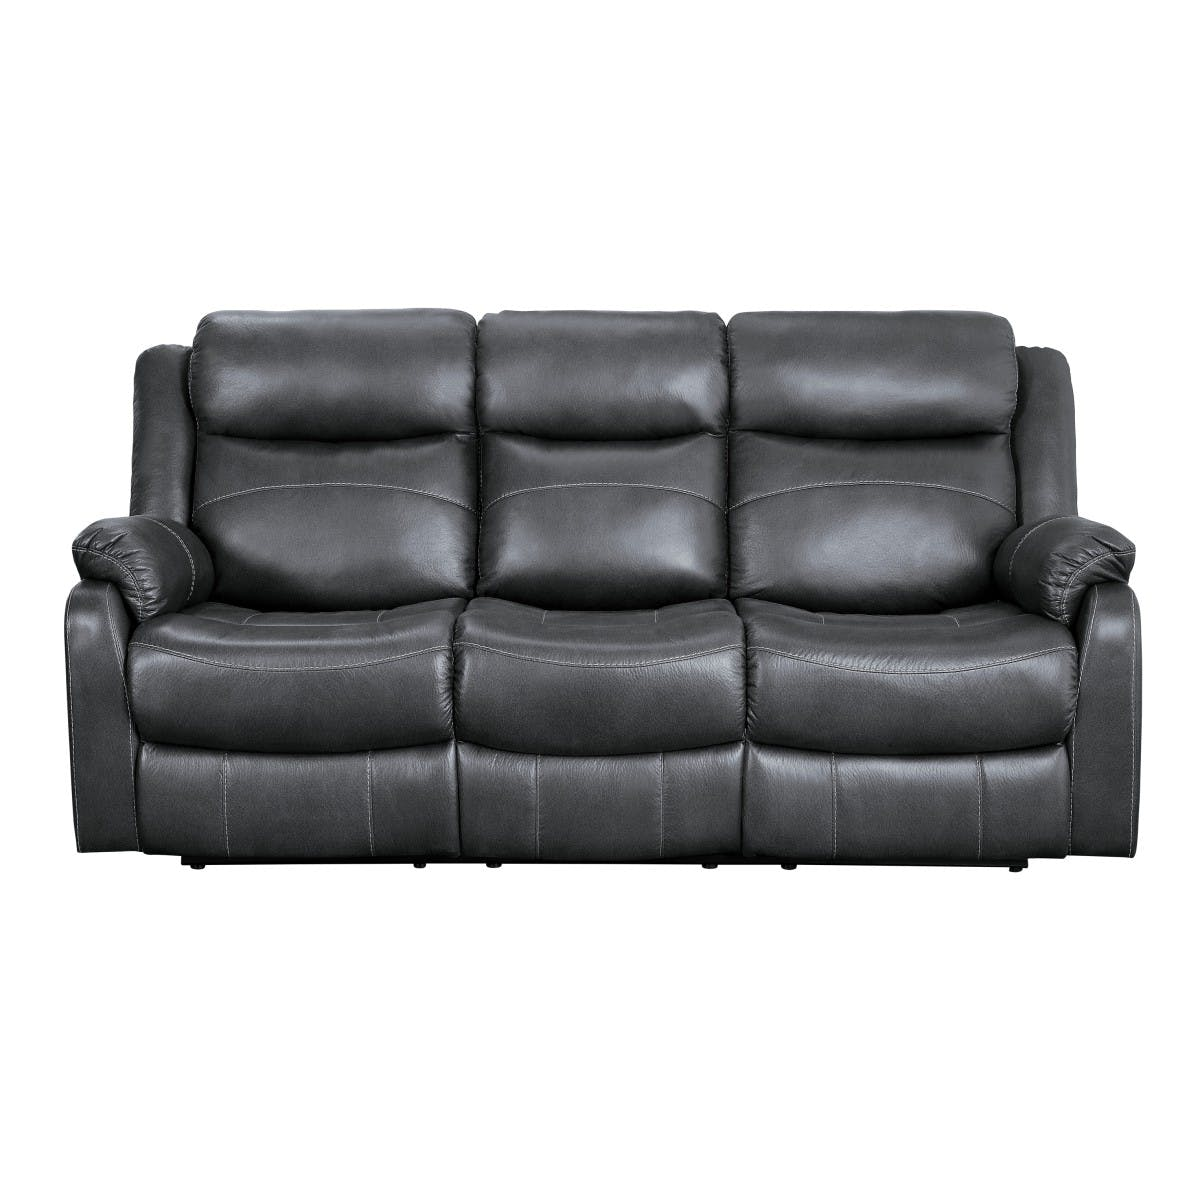 Picture of: Homelegance Living Room Double Lay Flat Reclining Sofa With Center Drop Down Cup Holders 9990gy 3